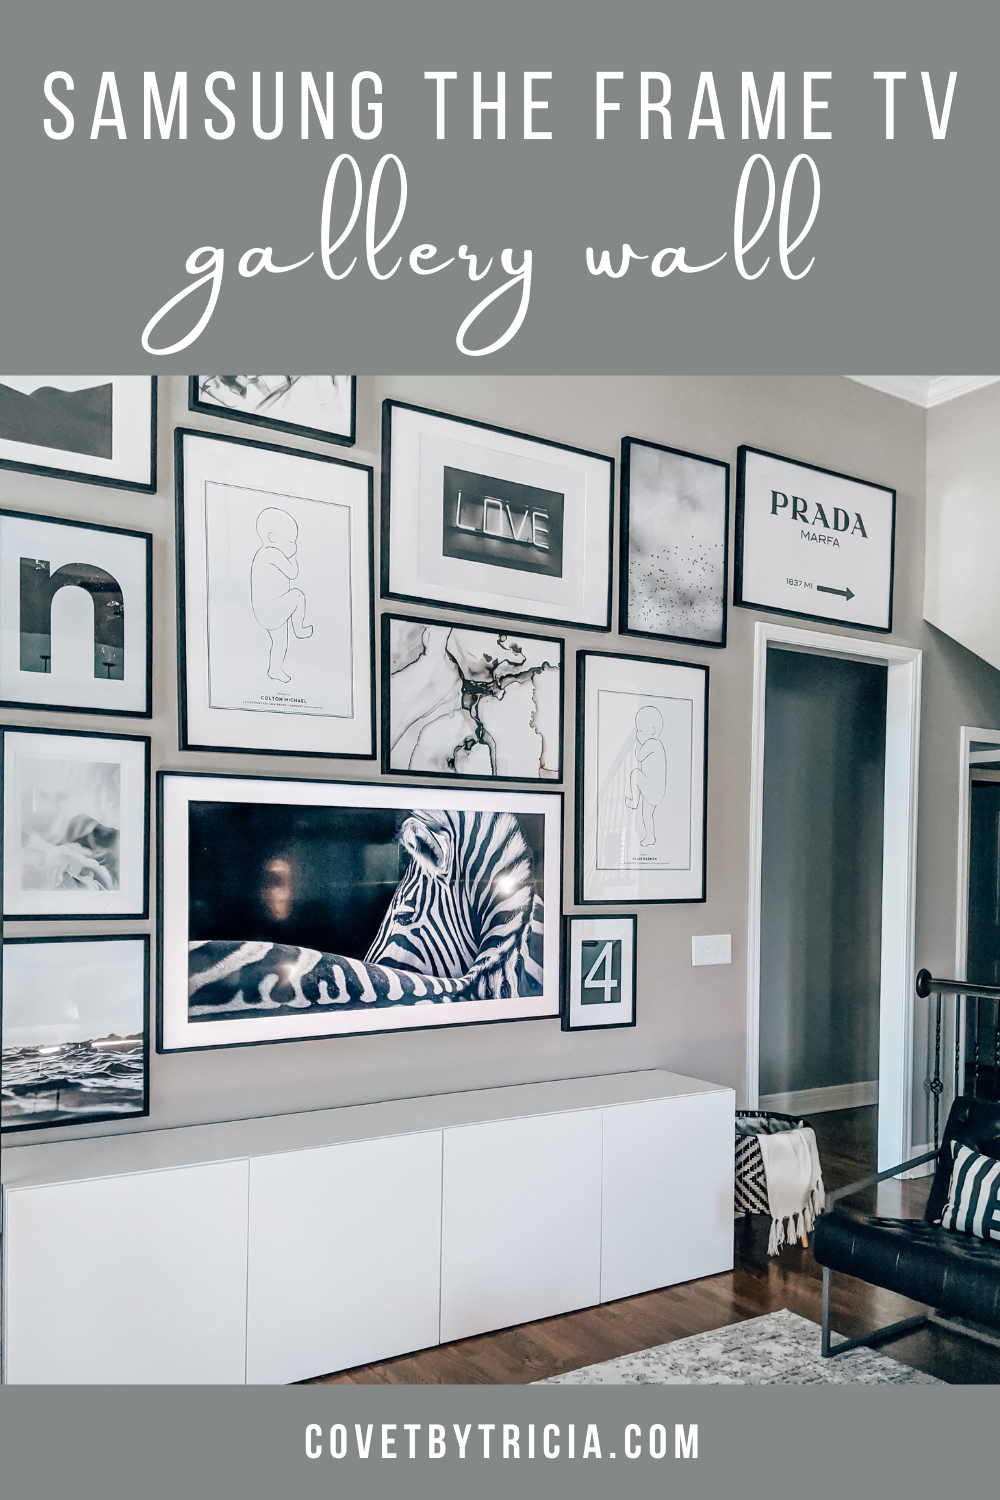 "Gallery Wall with Samsung The Frame TV - Samsung The Frame TV Gallery Wall - Living Room TV Gallery Wall - Samsung The Frame TV Review - Frame TV 65"" - Modern Living Room Gallery Wall - Minimalist Living Room"